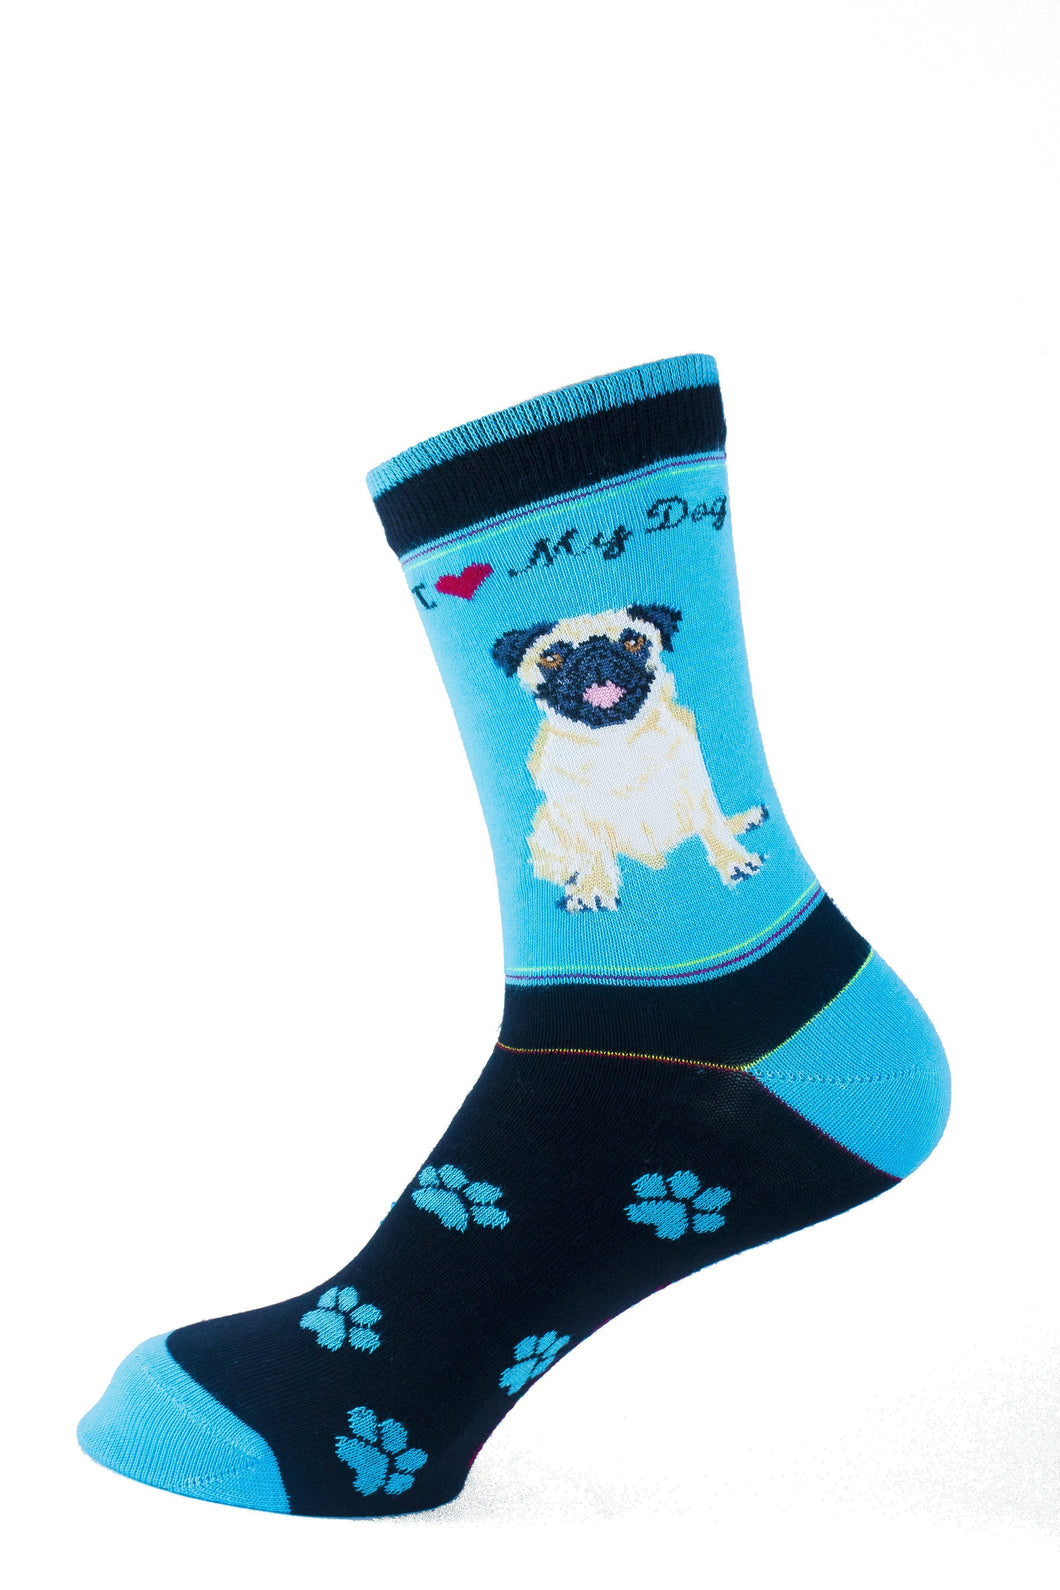 Pug Fawn Dog Socks Signature - samnoveltysocks.com